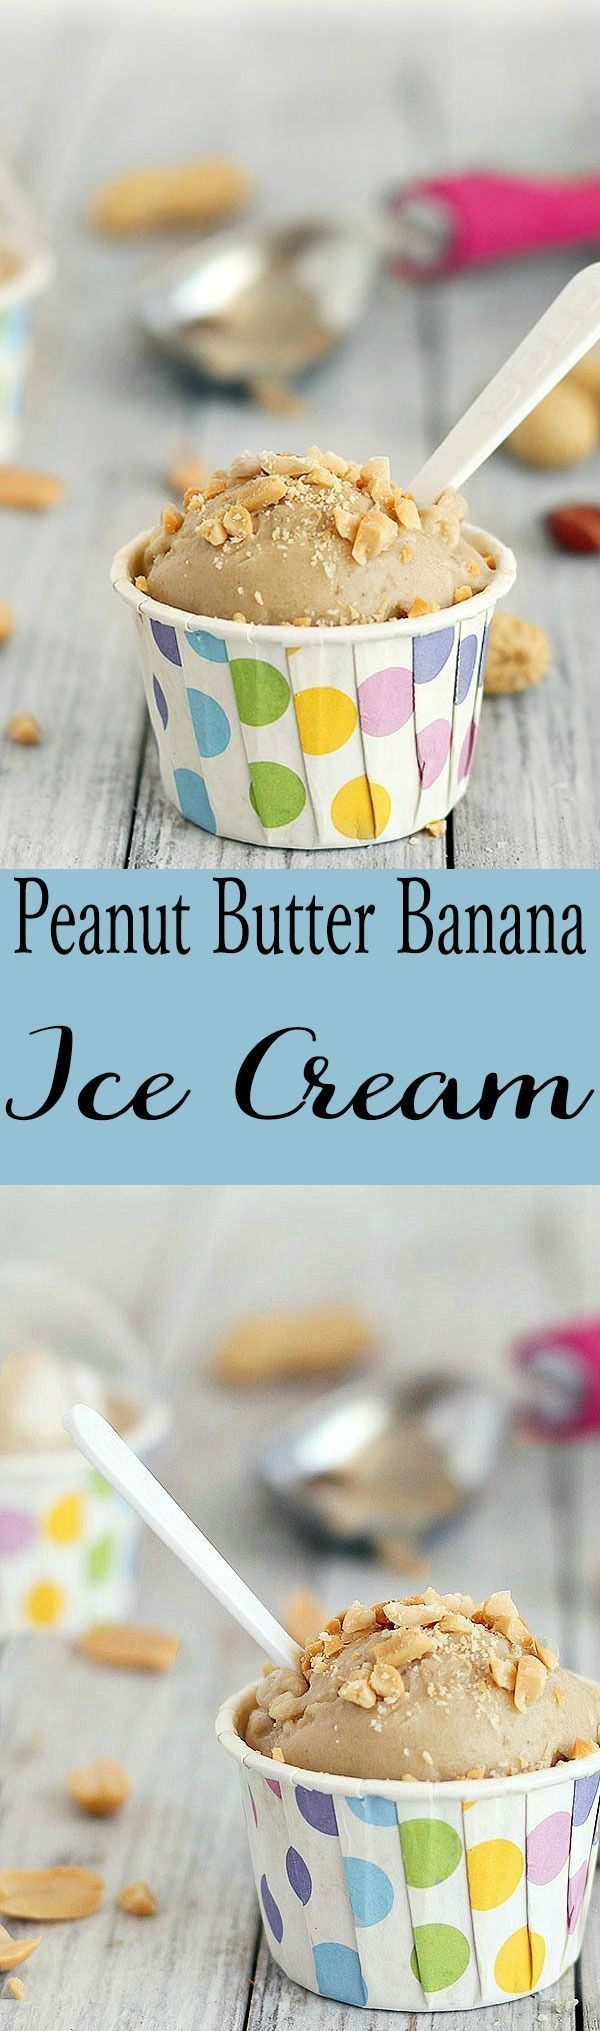 peanut butter banana ice cream banana ice cream peanut